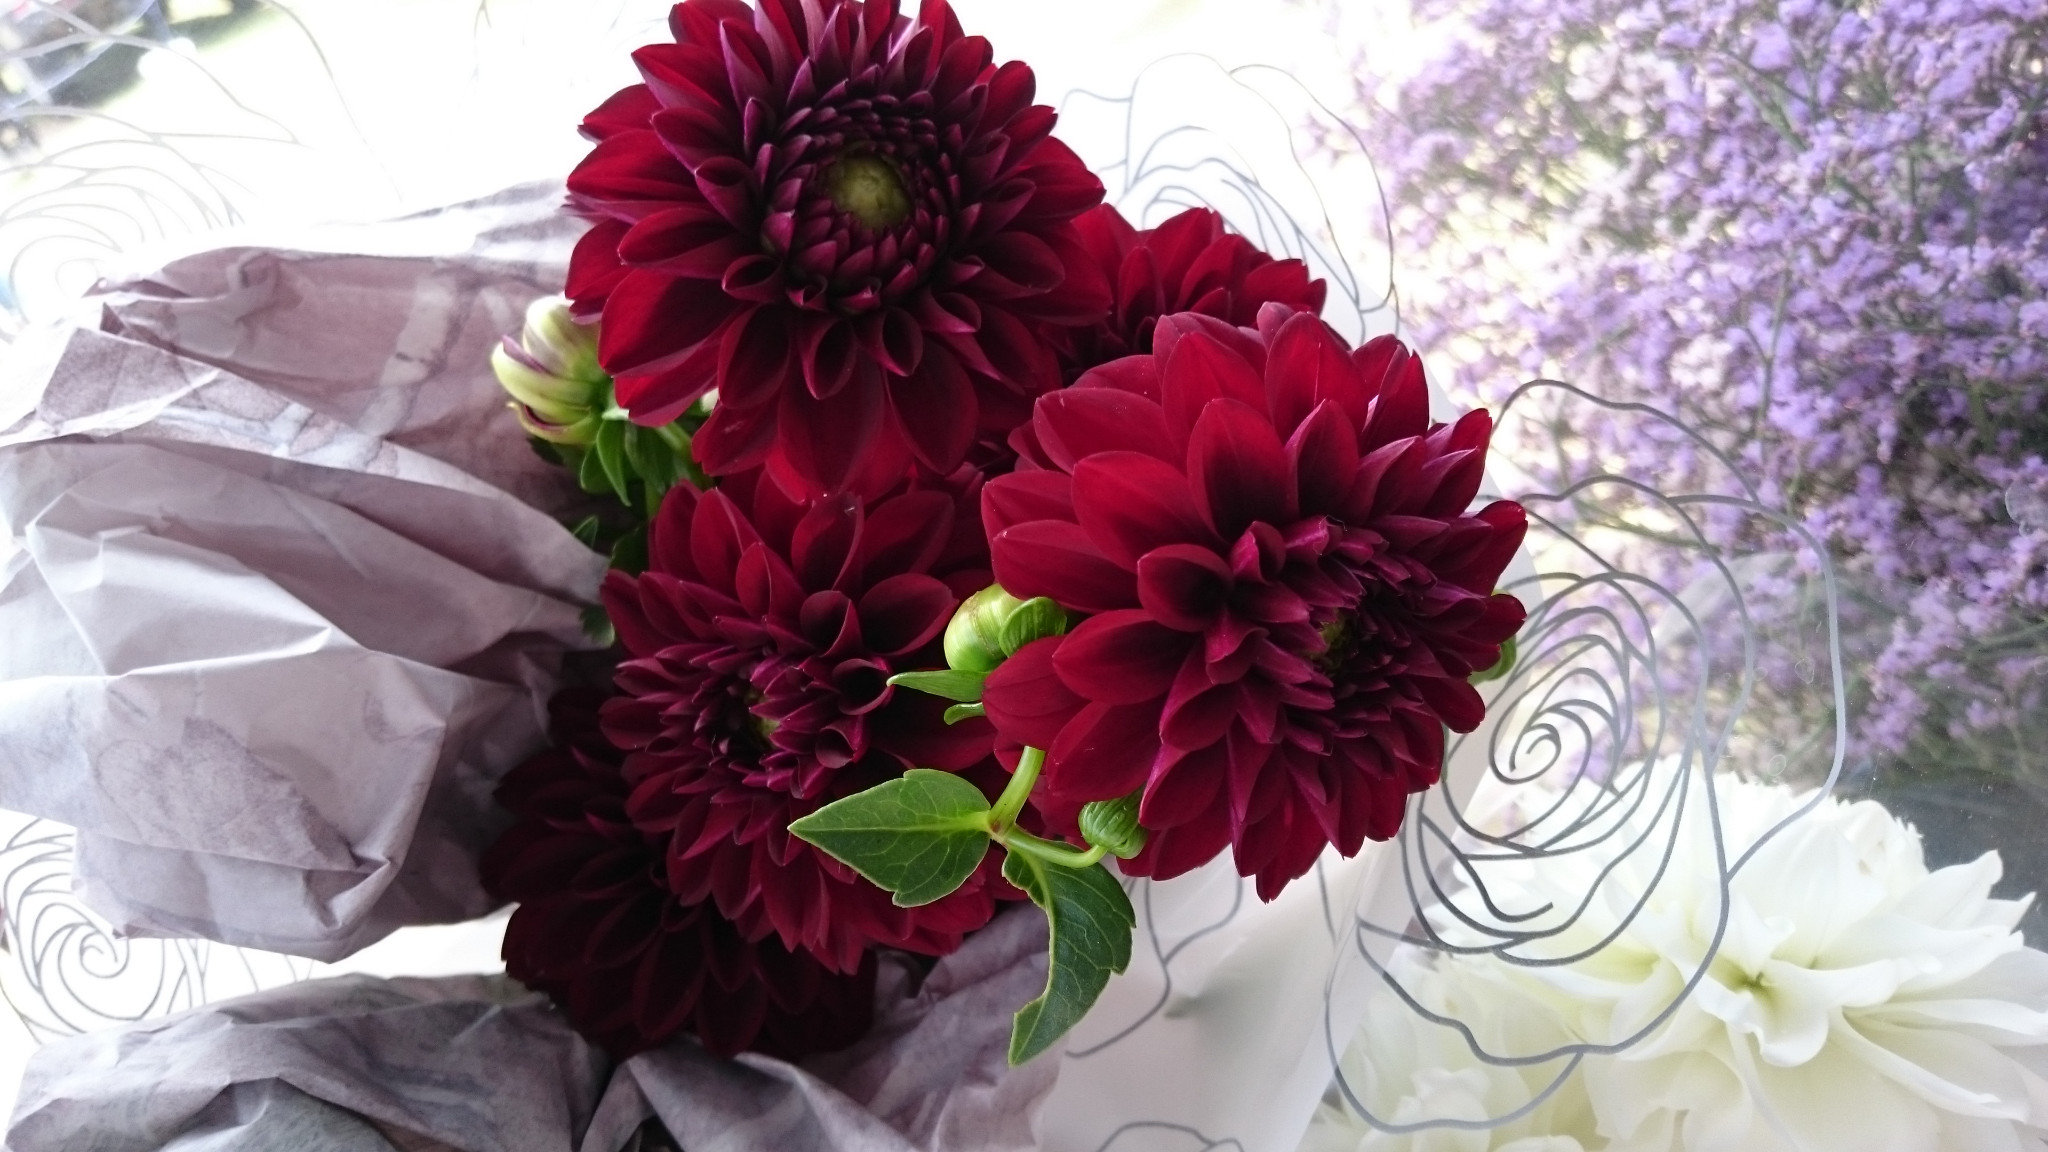 Dahlia Burgundy: semi open average 8cm head